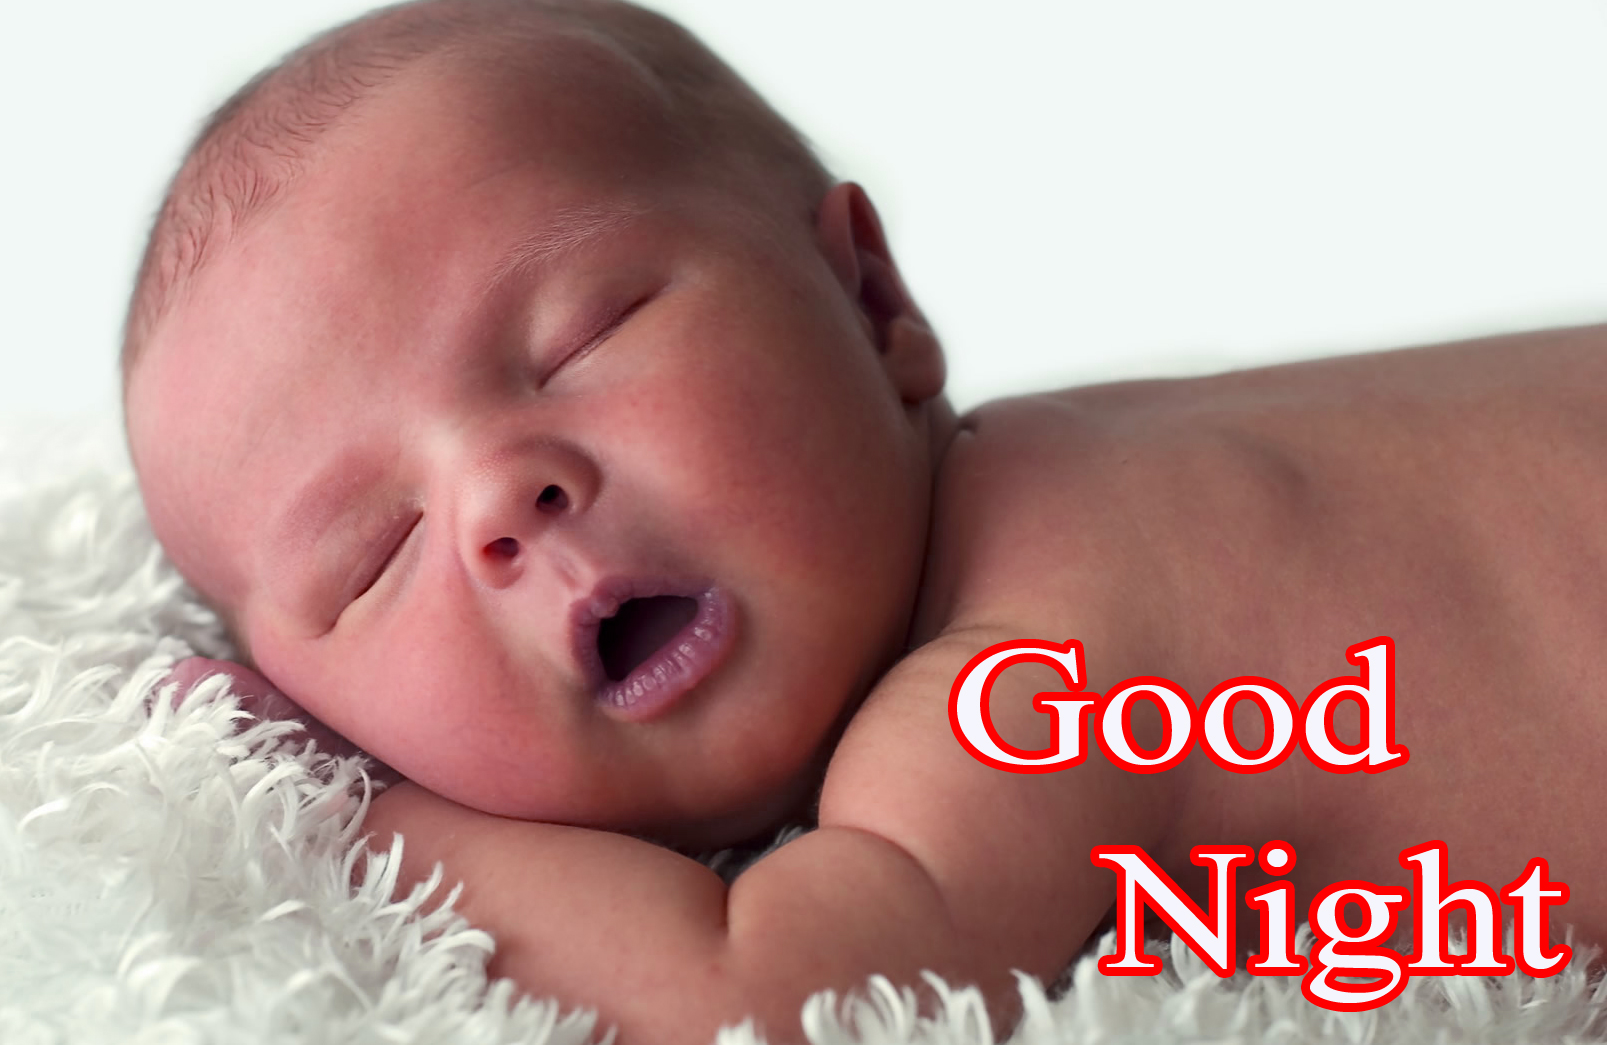 GOOD NIGHT IMAGES WITH CUTE BABY BOYS & GIRLS  WALLPAPER PICS HD